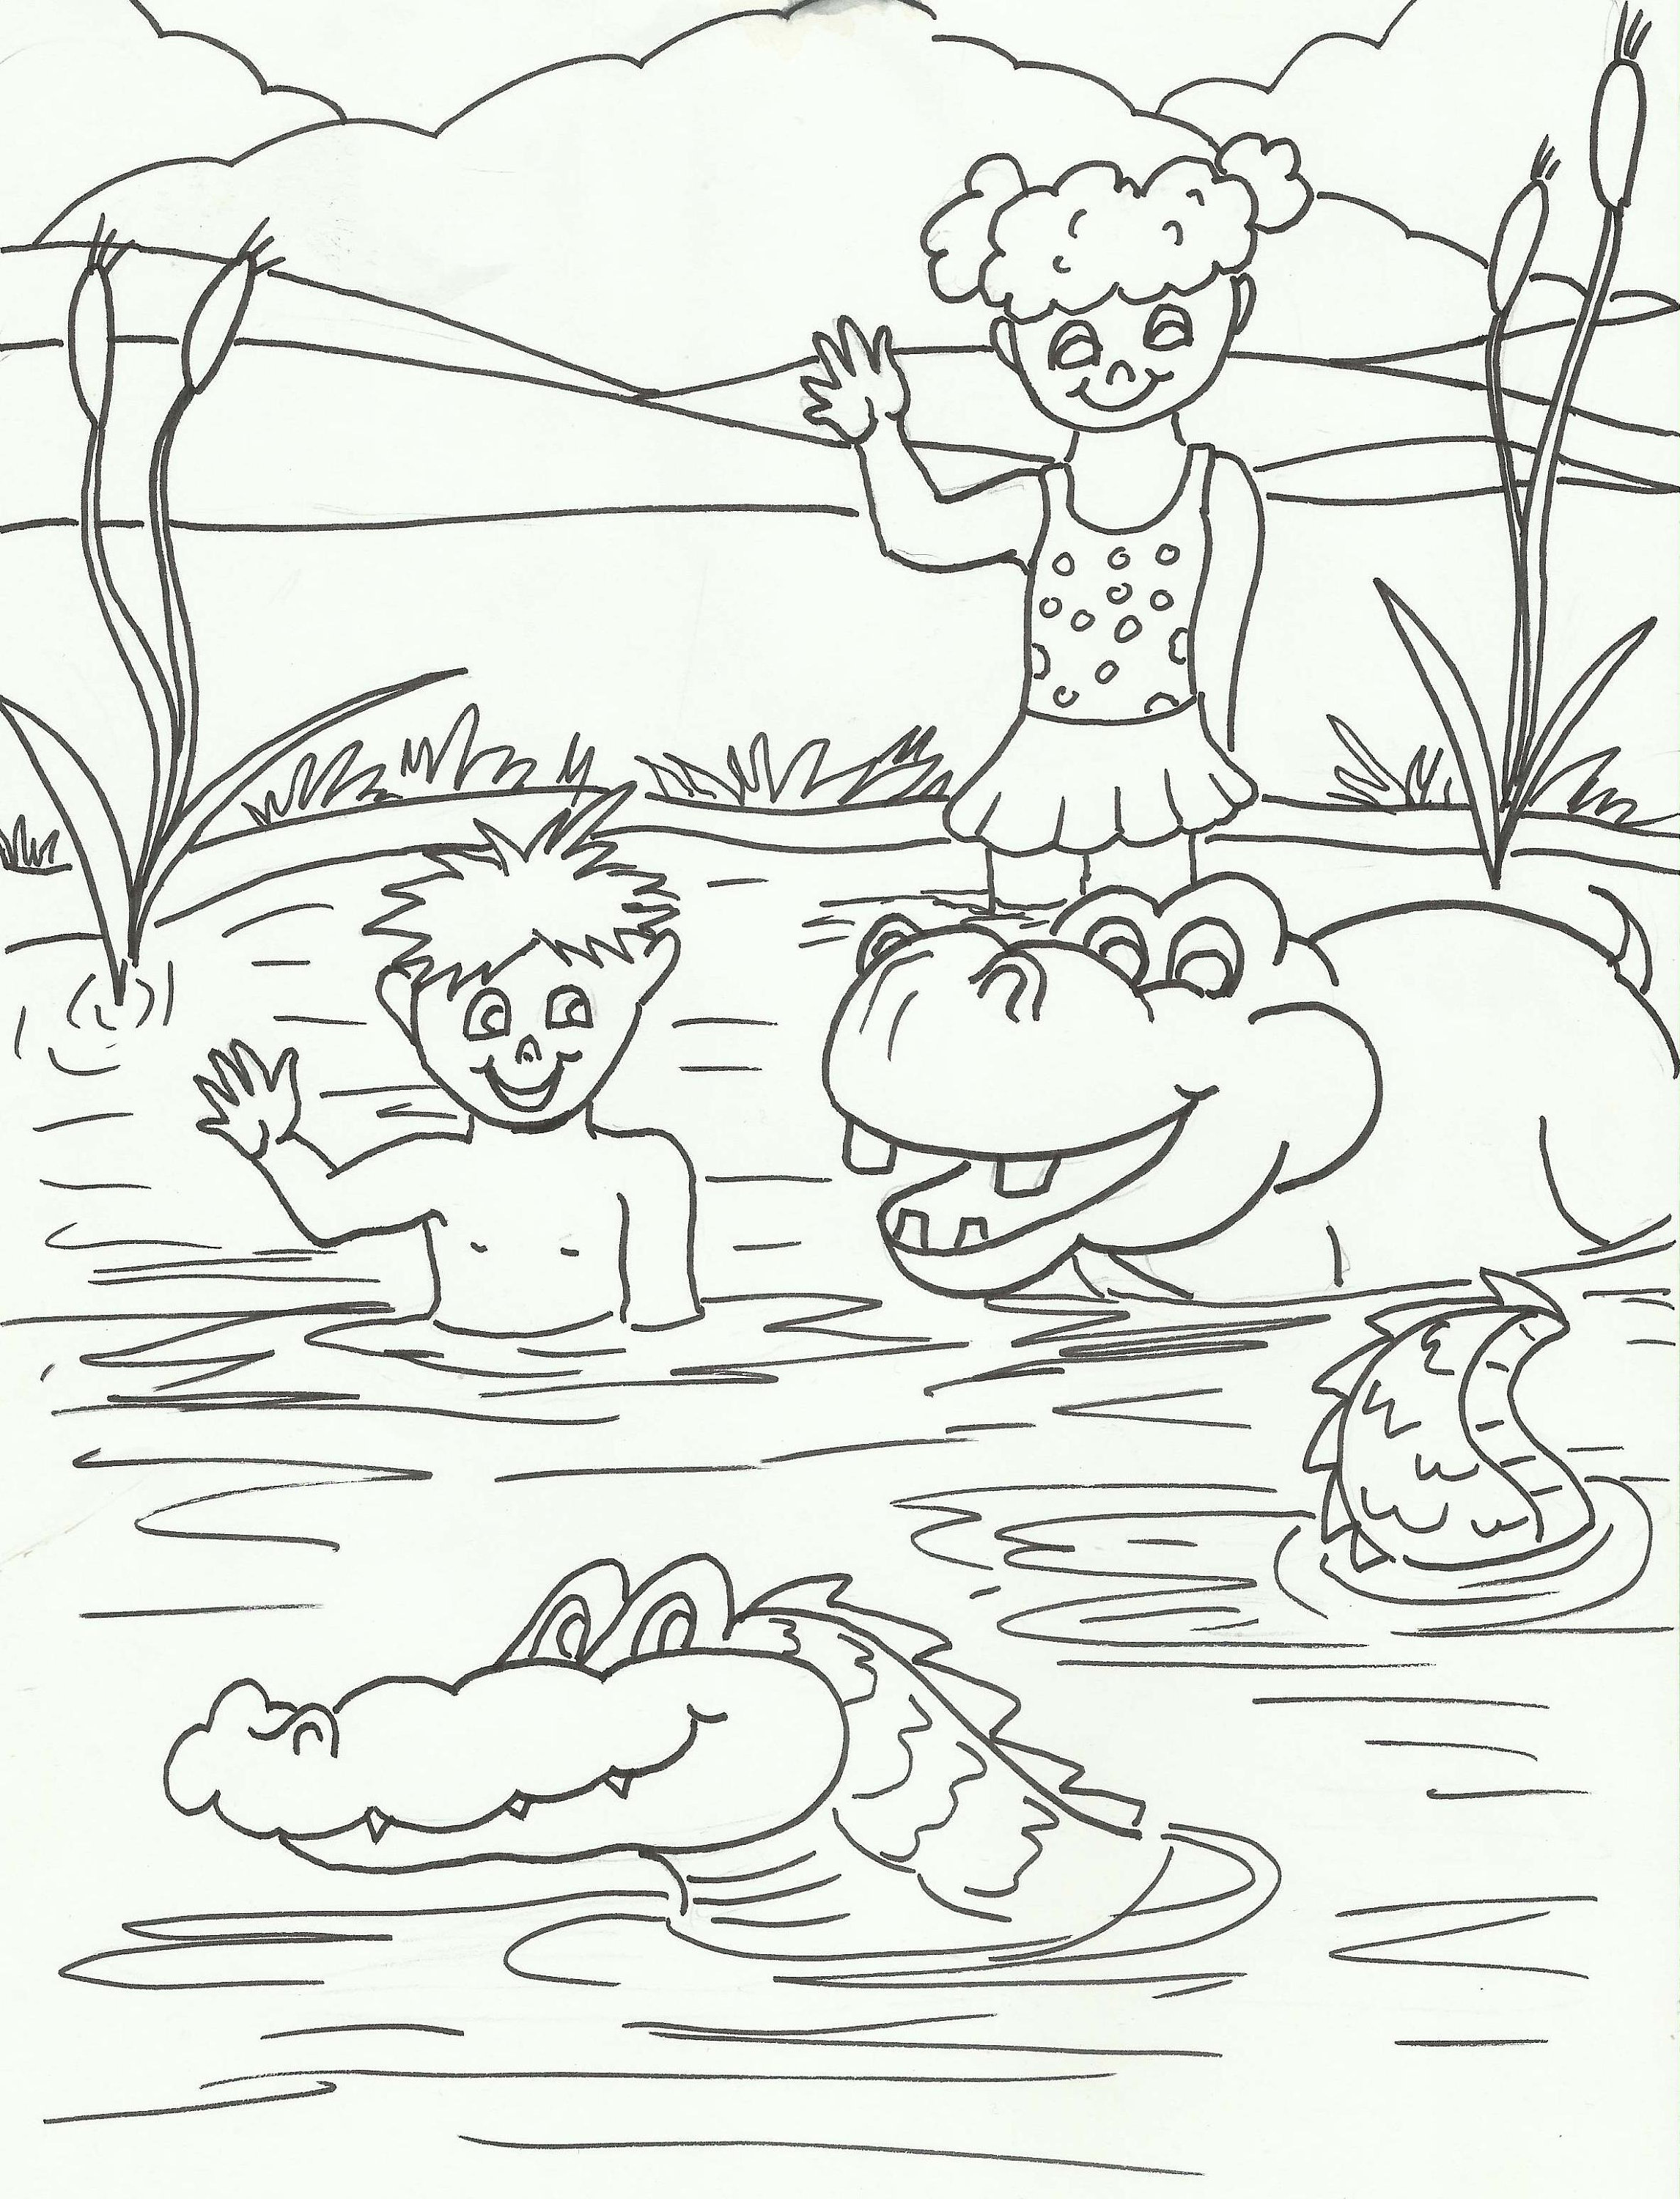 digital childrens lets have fun in paradise coloring pages 10 JW Pioneer School Book zoom